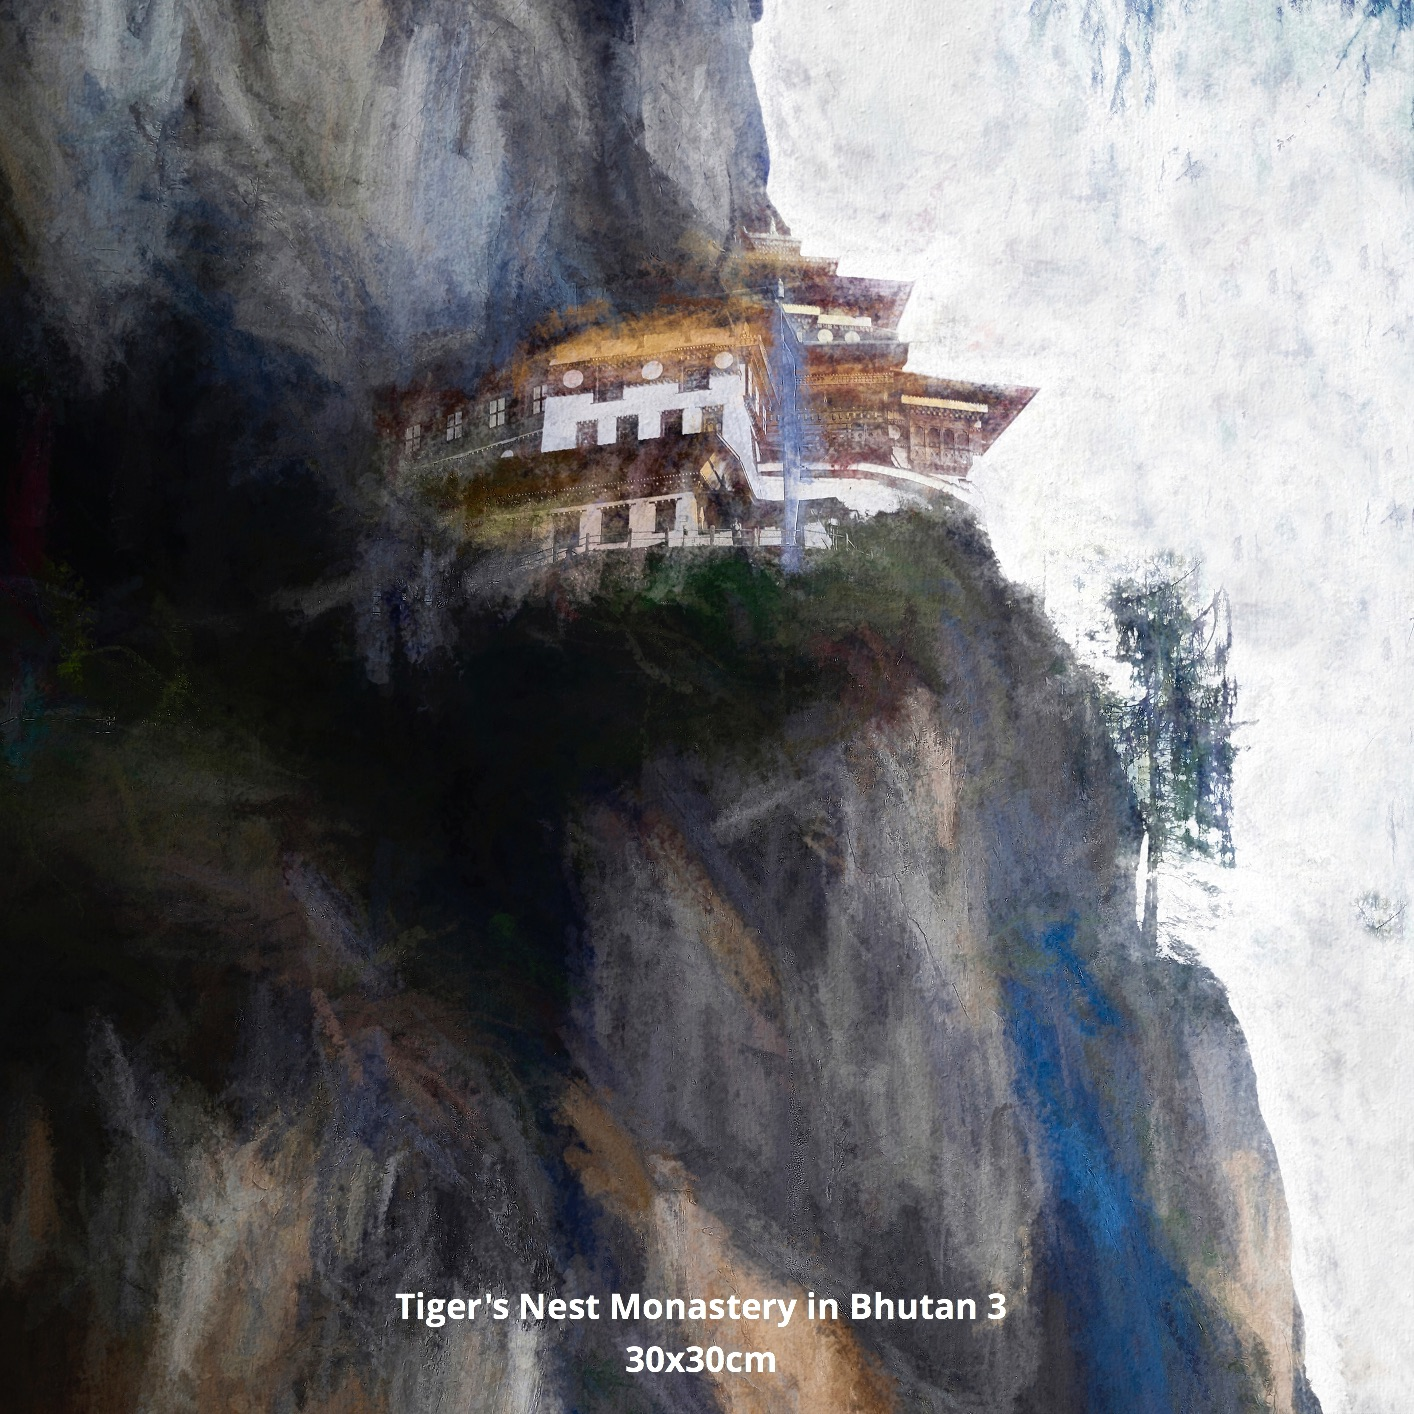 Tiger's Nest Monastery in Bhutan 3